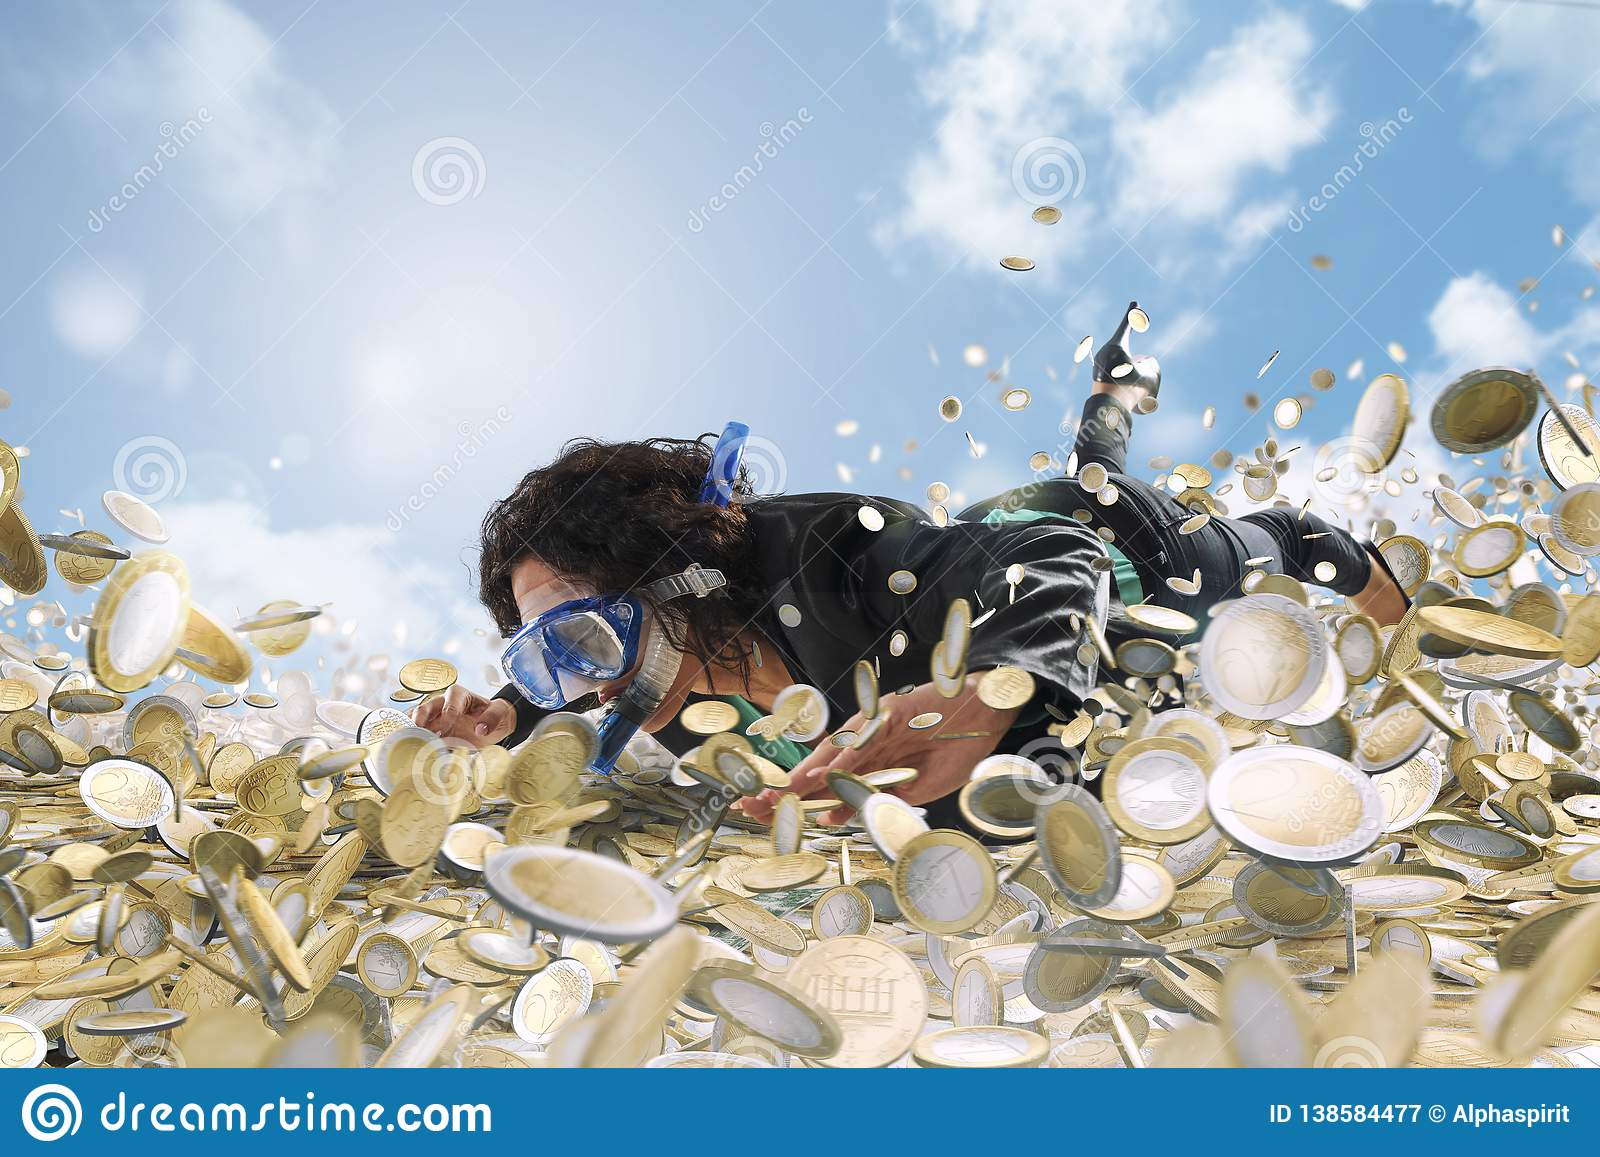 Businesswoman swims in a pool of money